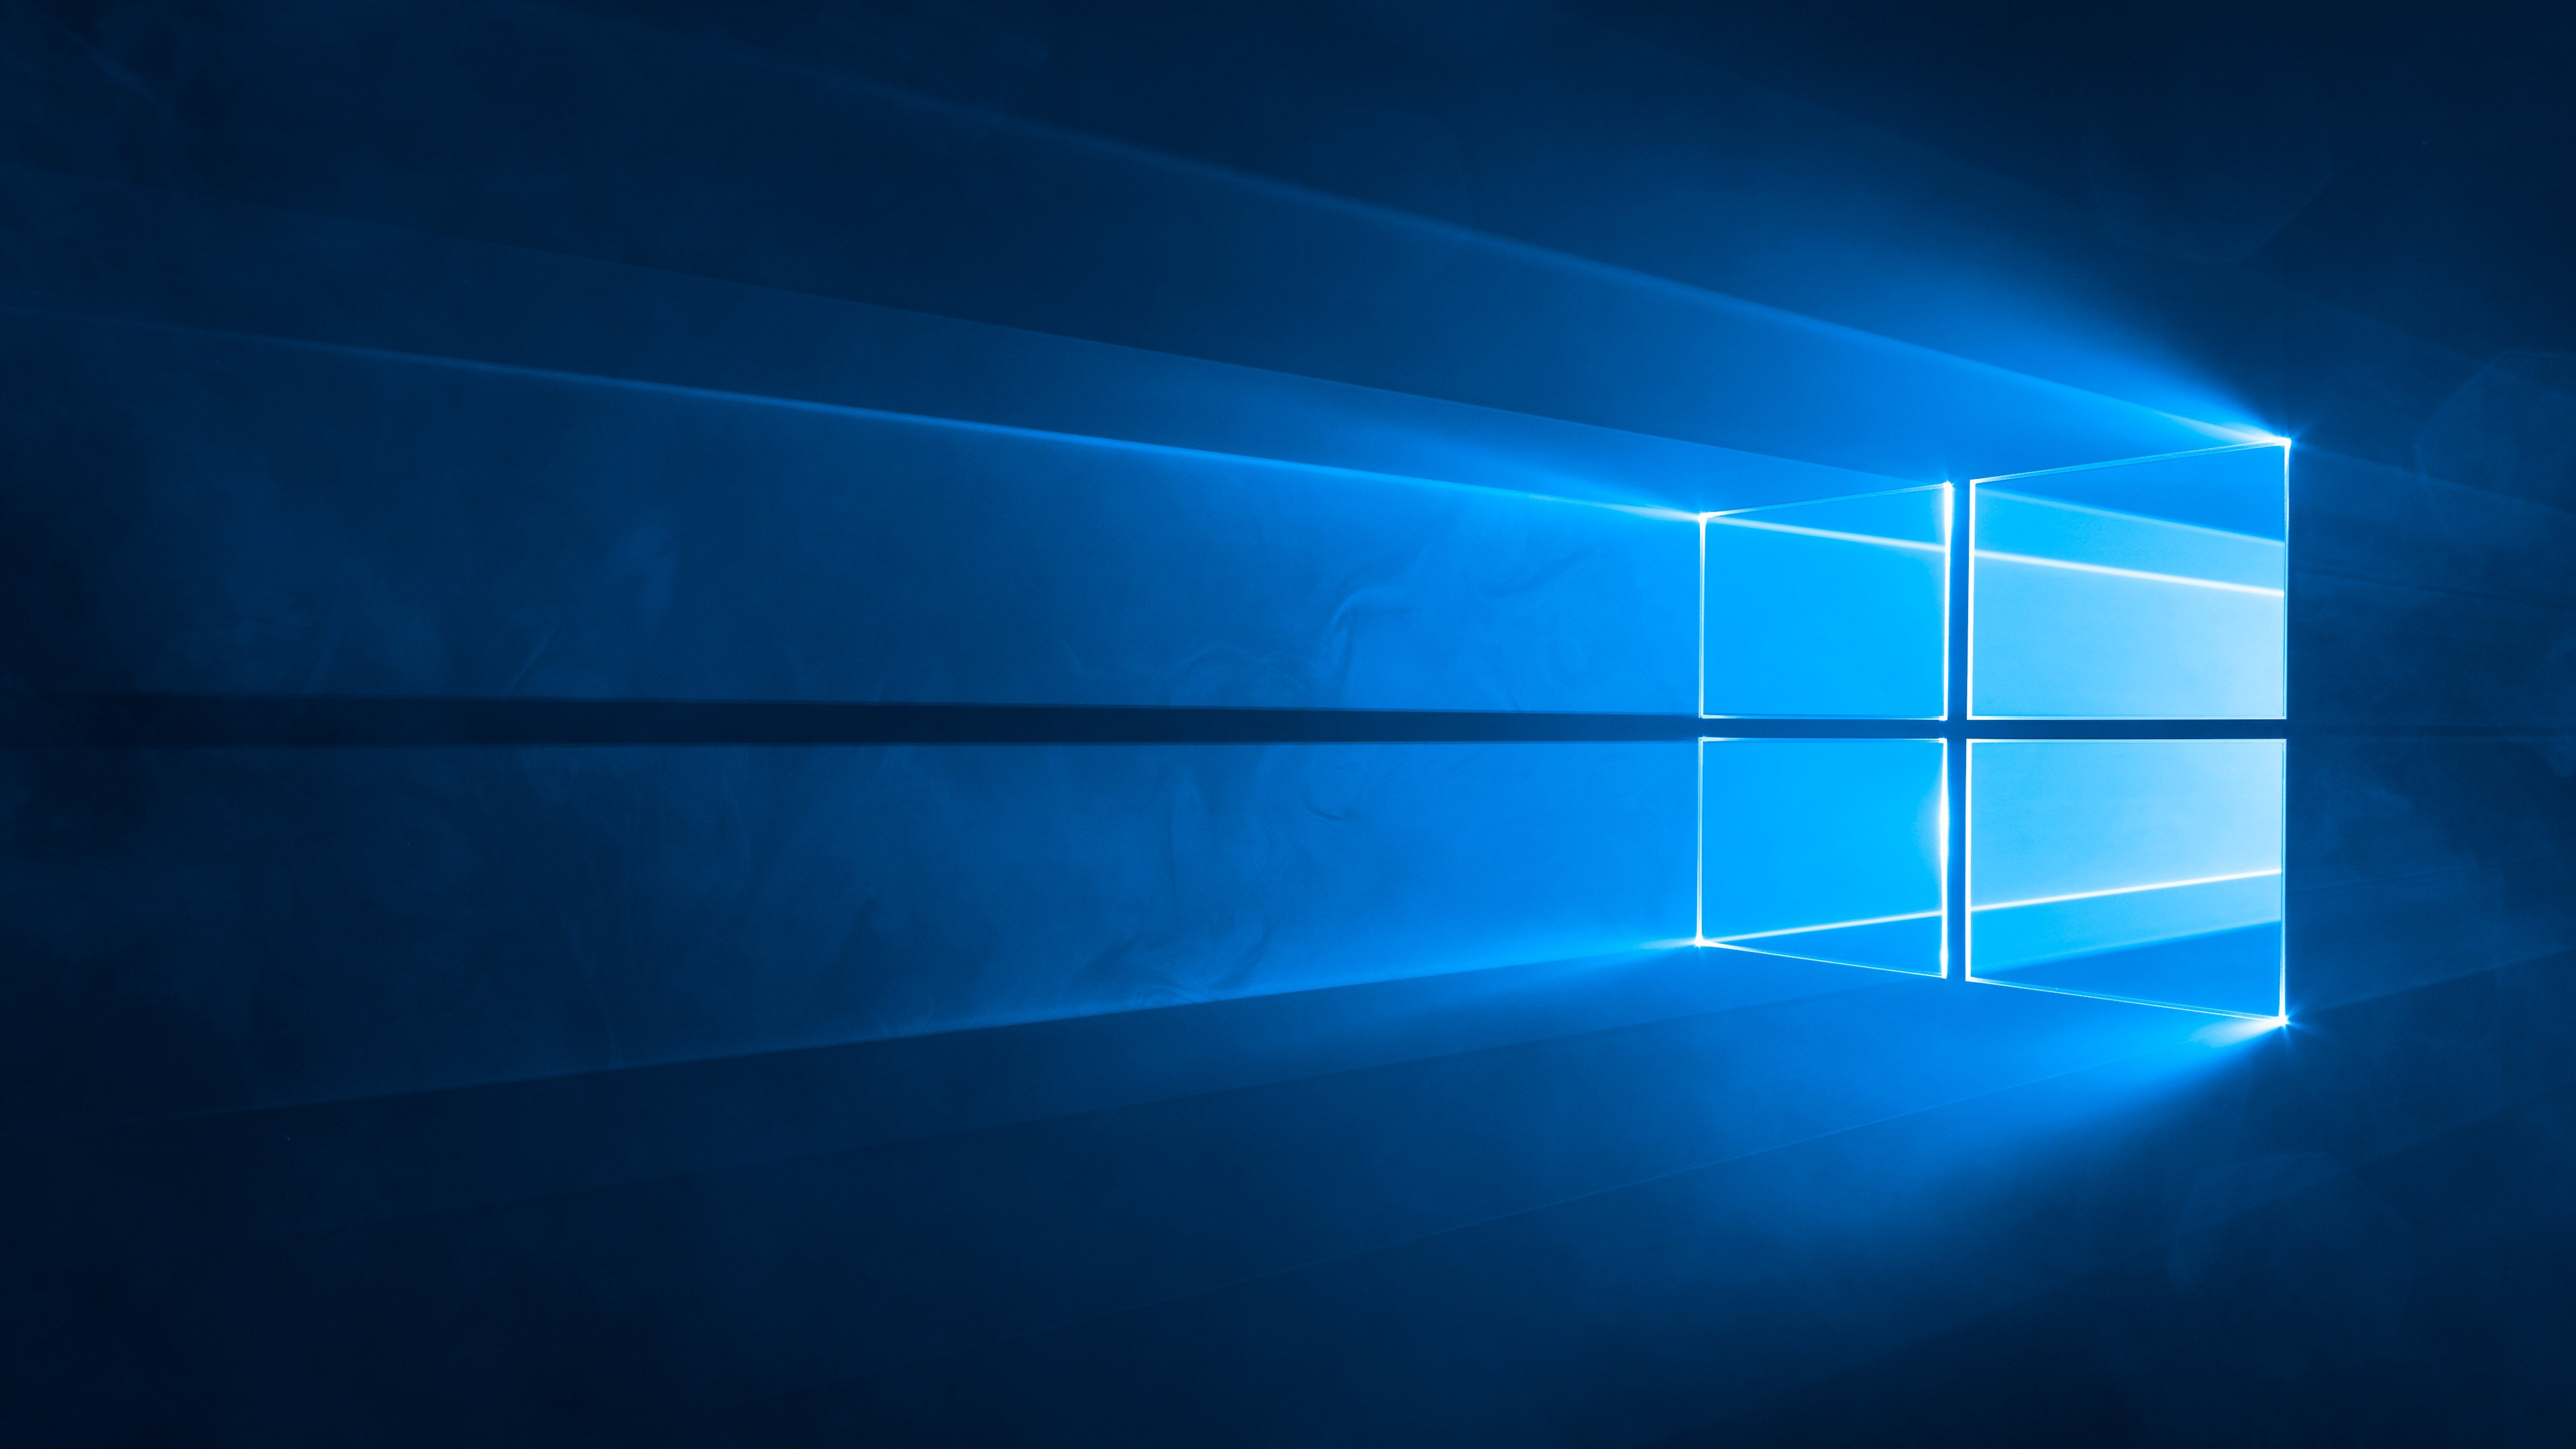 Download the stock Windows 10 wallpapers for your tablet or 3840x2160